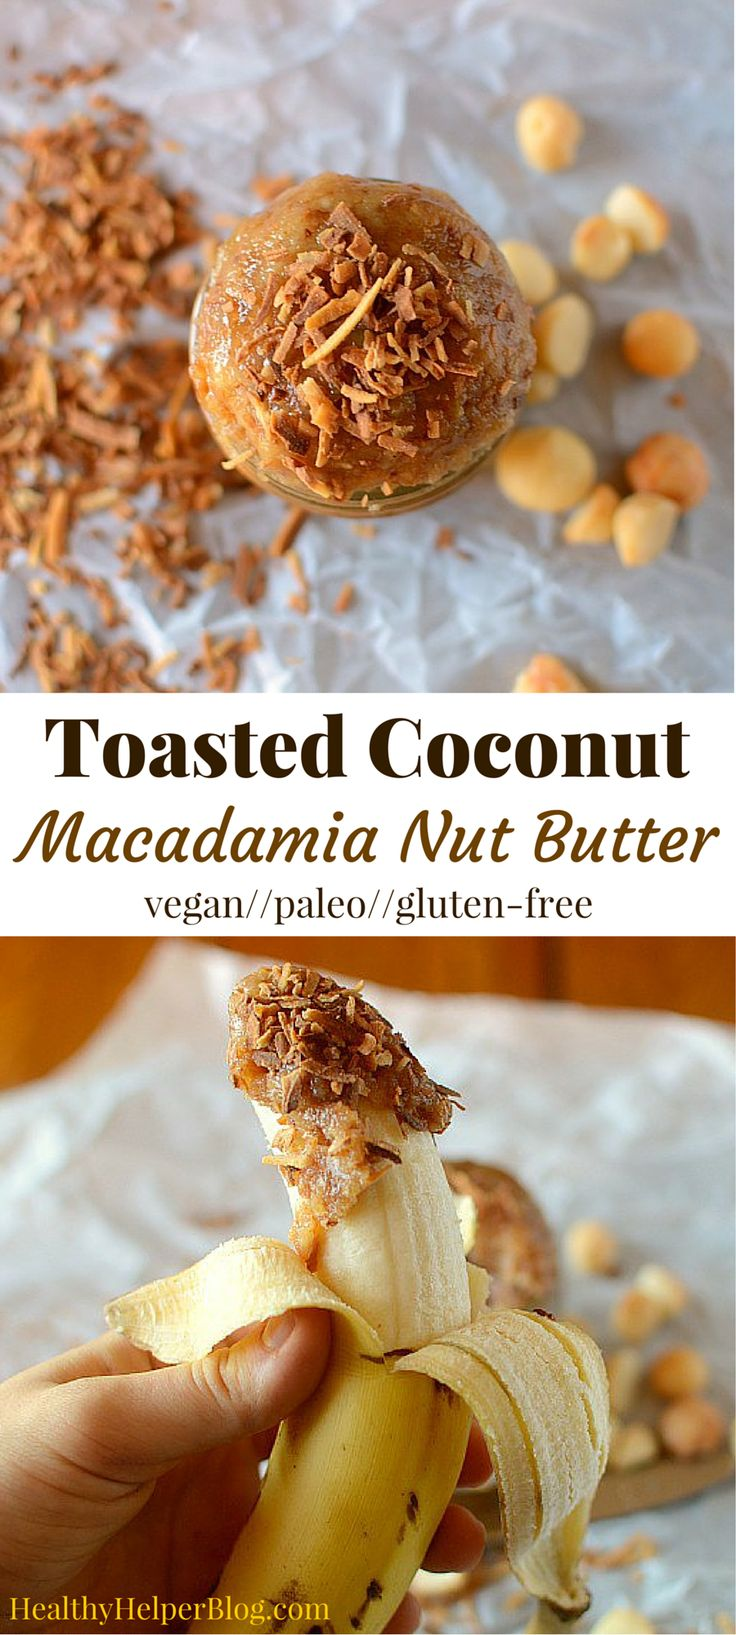 ... Coconut Macadamia Nut Butter | Recipe | Butter, Full of and Nut butter